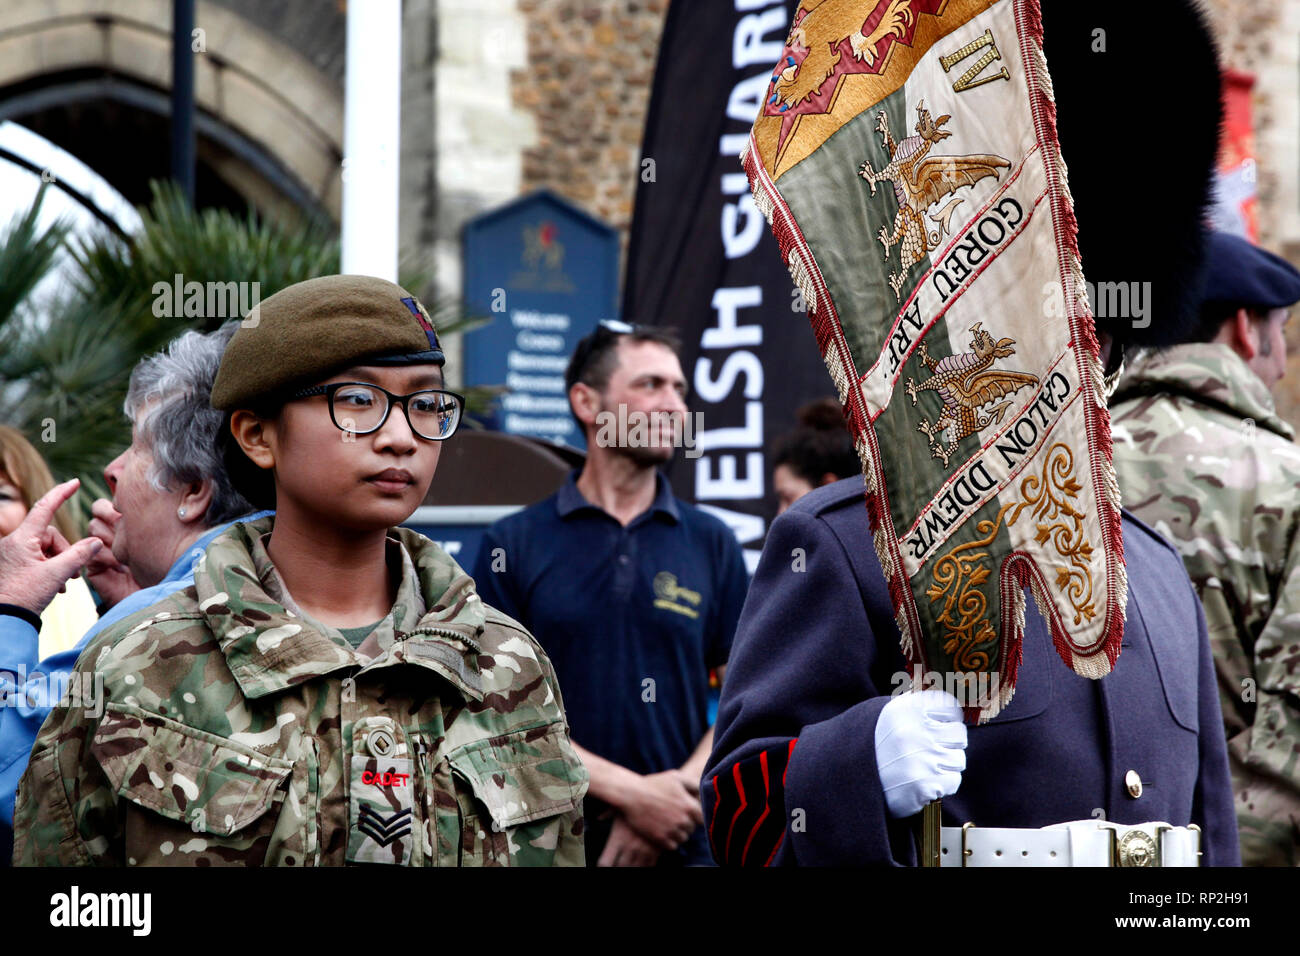 Cardiff, Wales, UK. February 20th 2019. A young army cadet stood outside Cardiff Castle at the 1st Battalion Welsh Guard's homecoming parade. This Batallion had just served their third tour in Afghanistan. Credit: Lily Watts/Alamy Live News - Stock Image